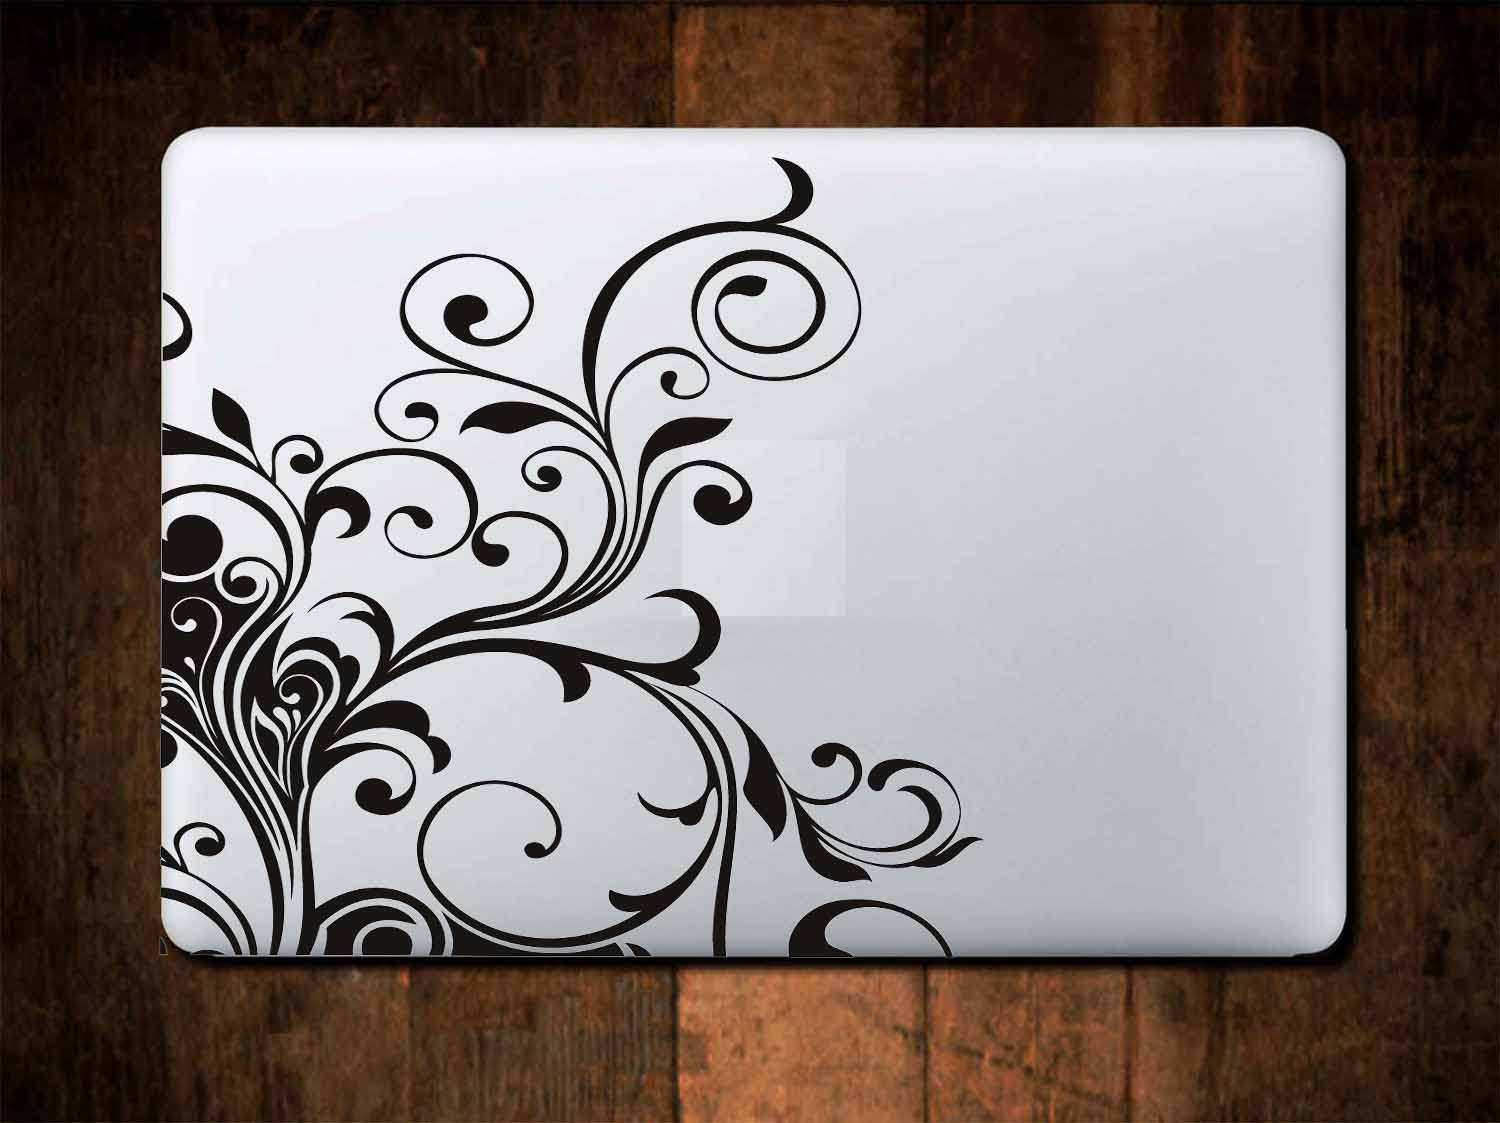 The Wall Decal blog: The coolest designs for laptop decals are ...